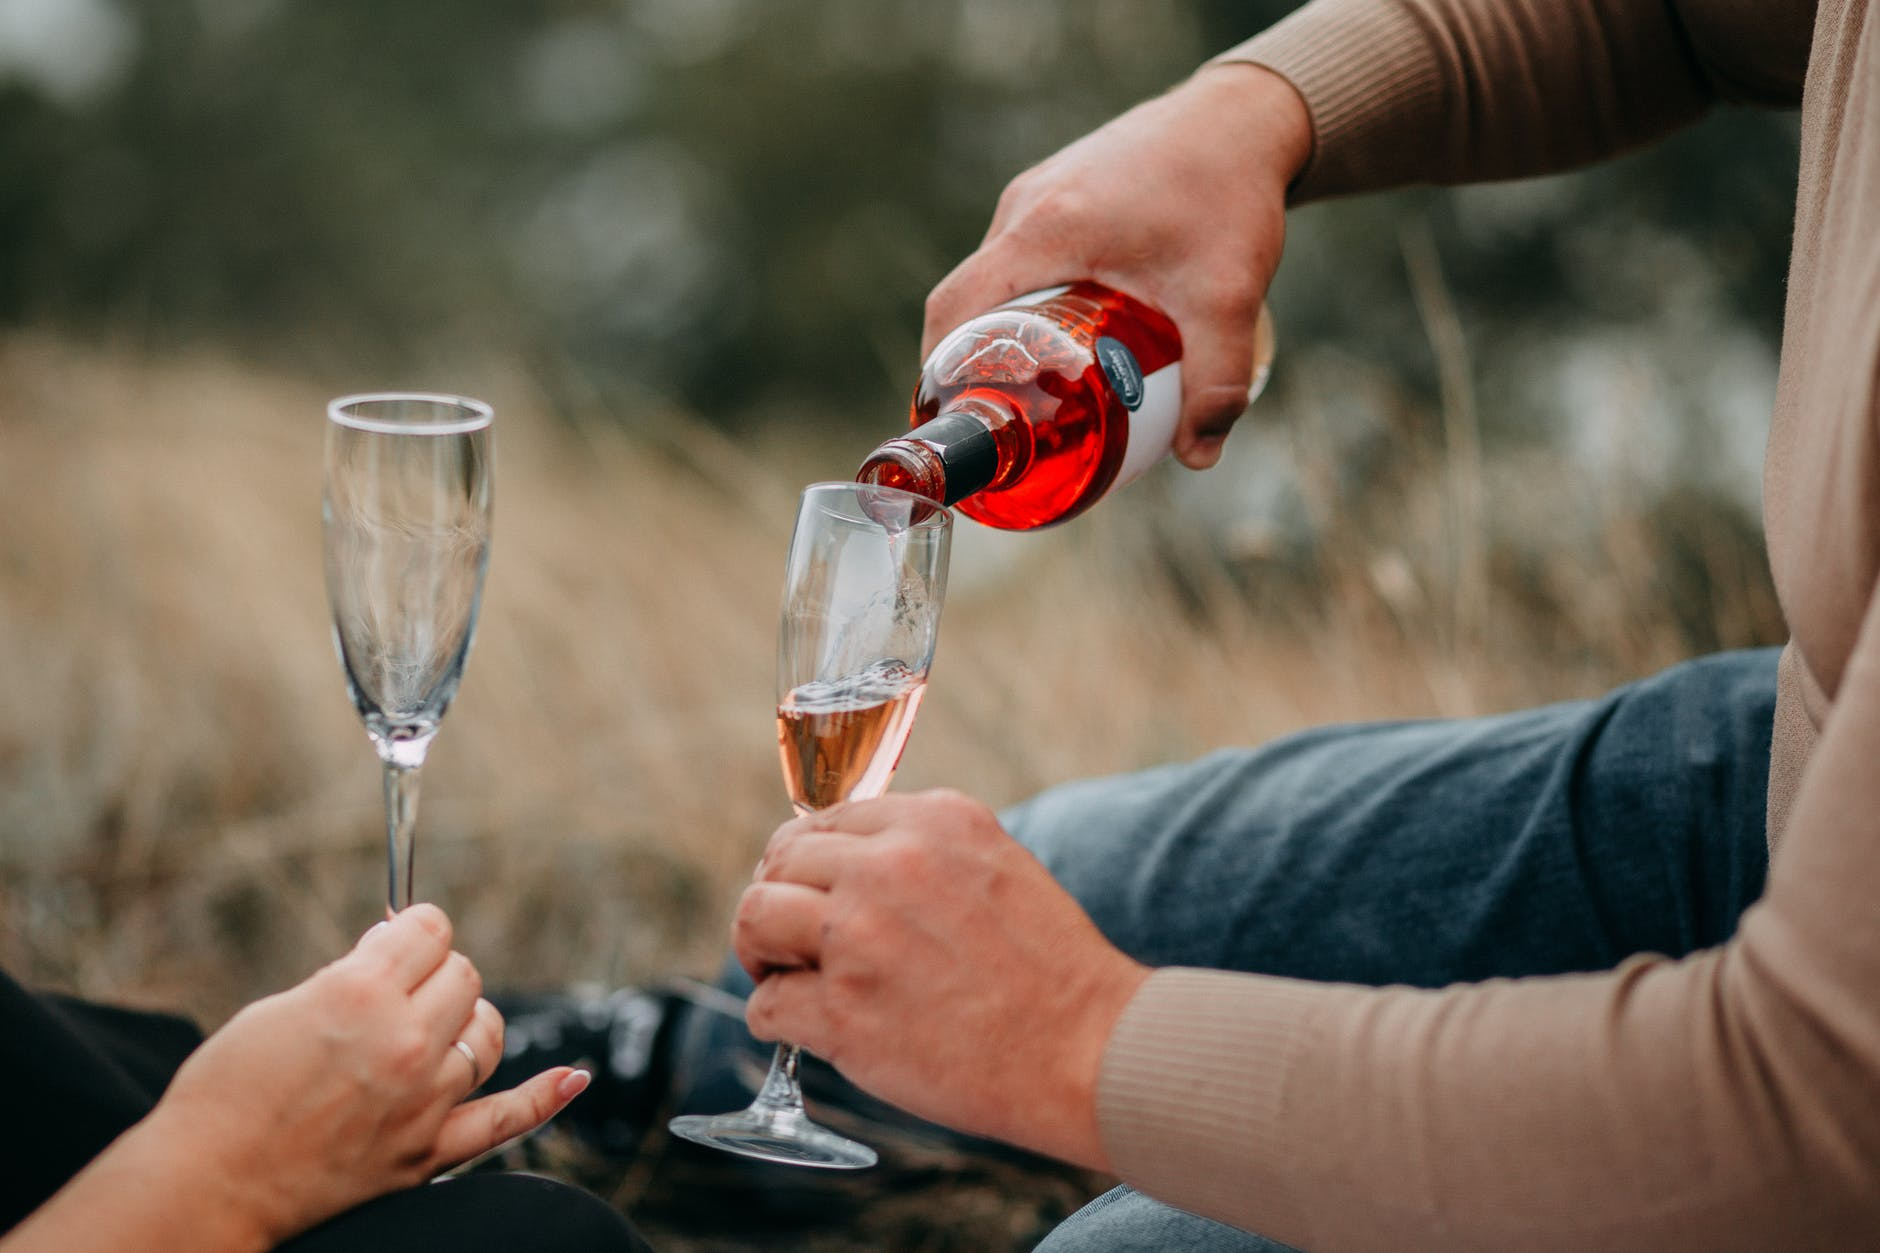 person pouring champagne in champagne flute